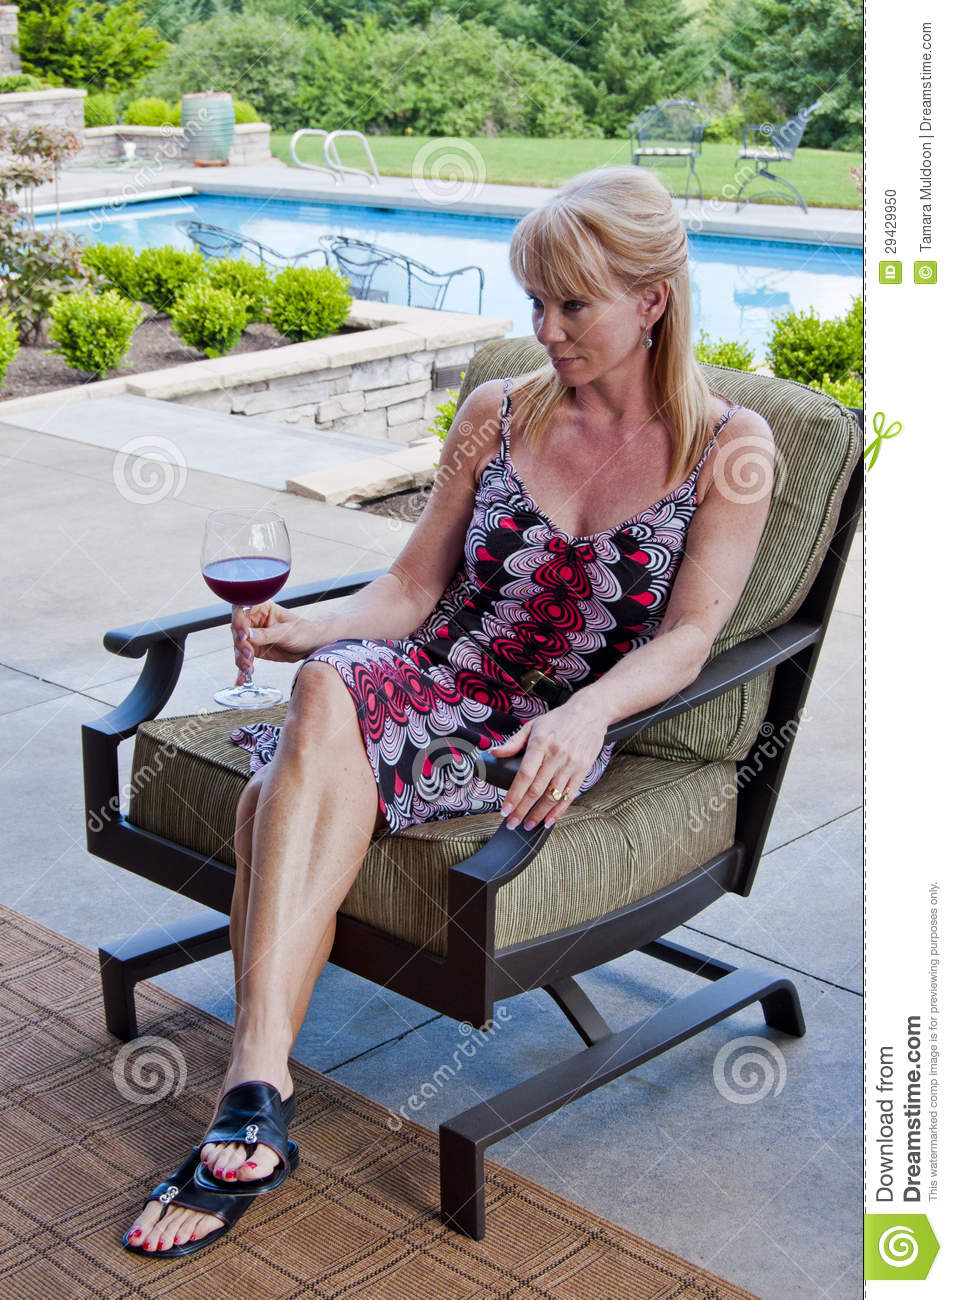 Woman On Patio With Wine Glass Stock Photo - Image: 29429950